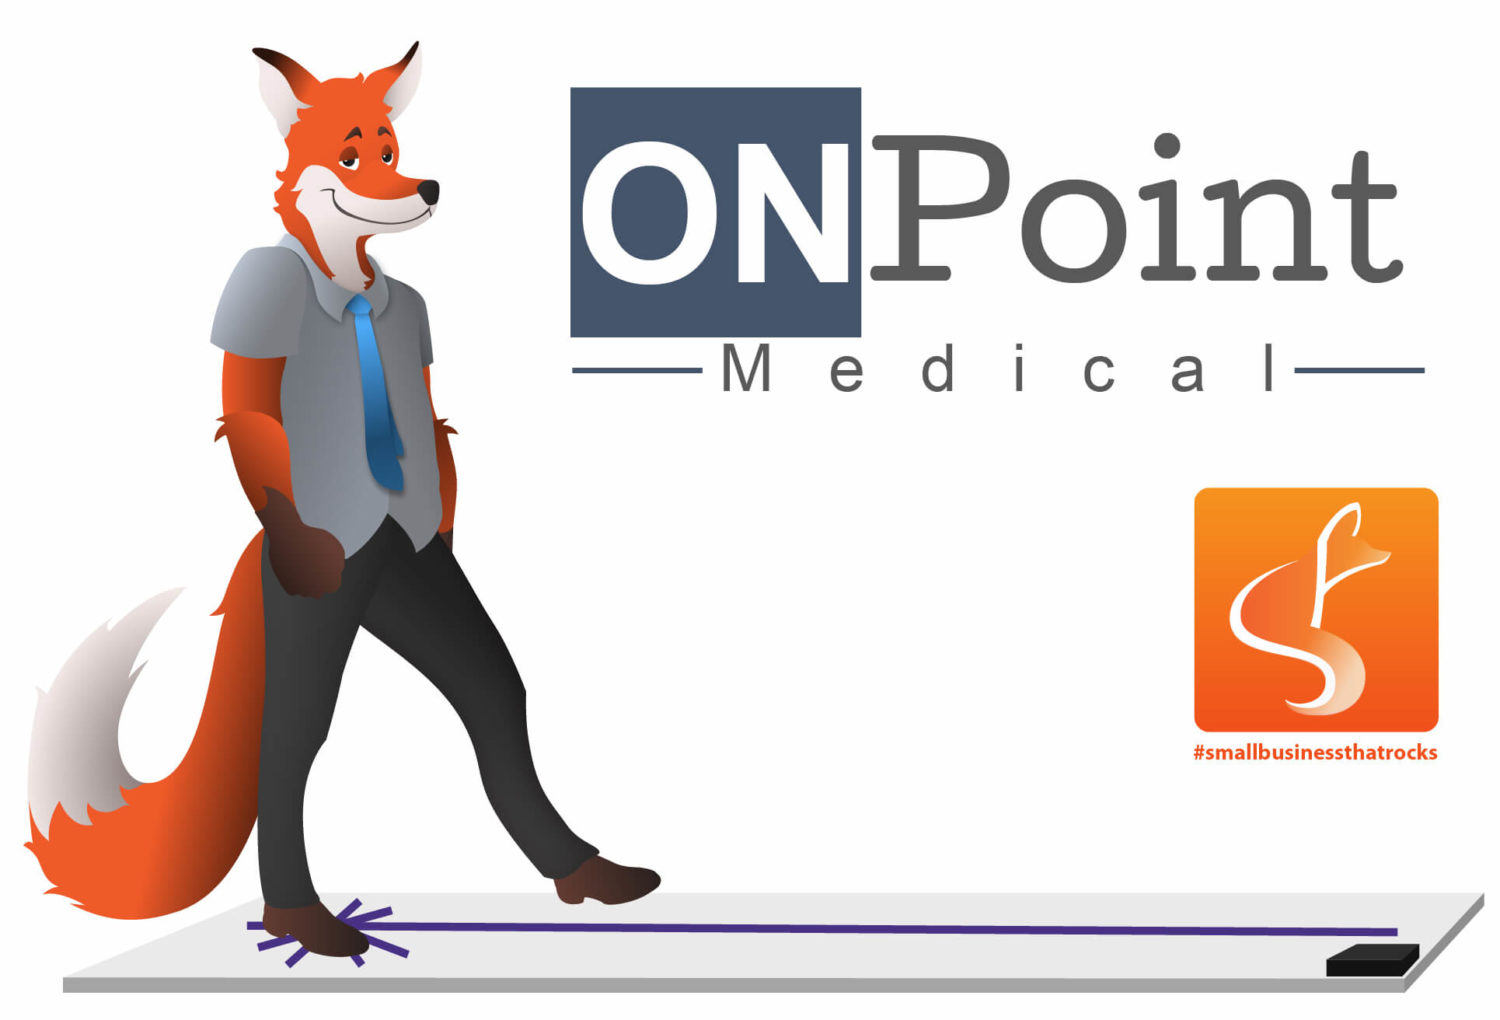 ONPoint blog feature image